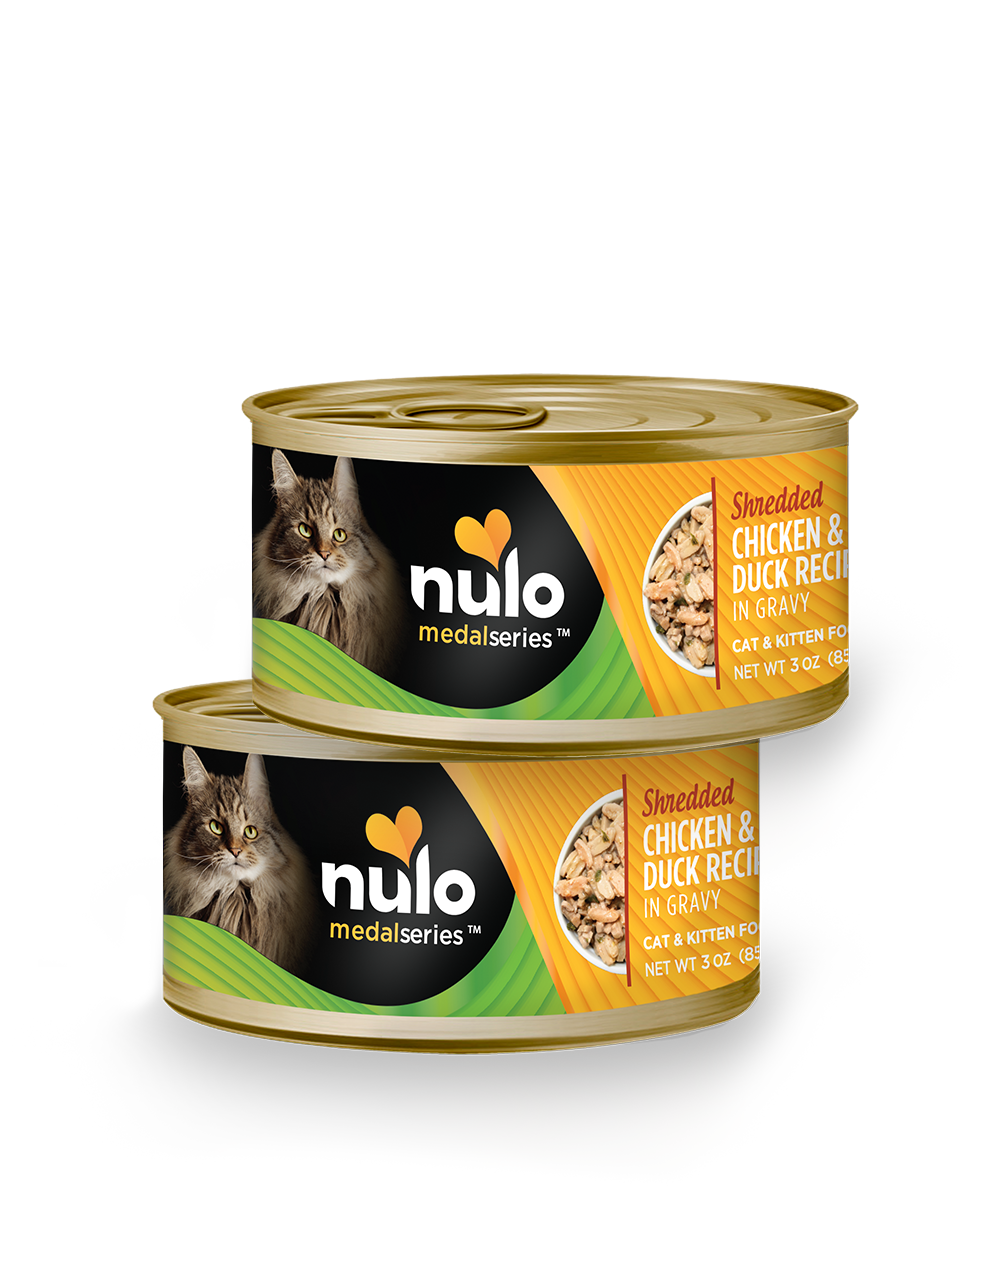 Nulo medalseries 3oz cat cans Chicken&Duck